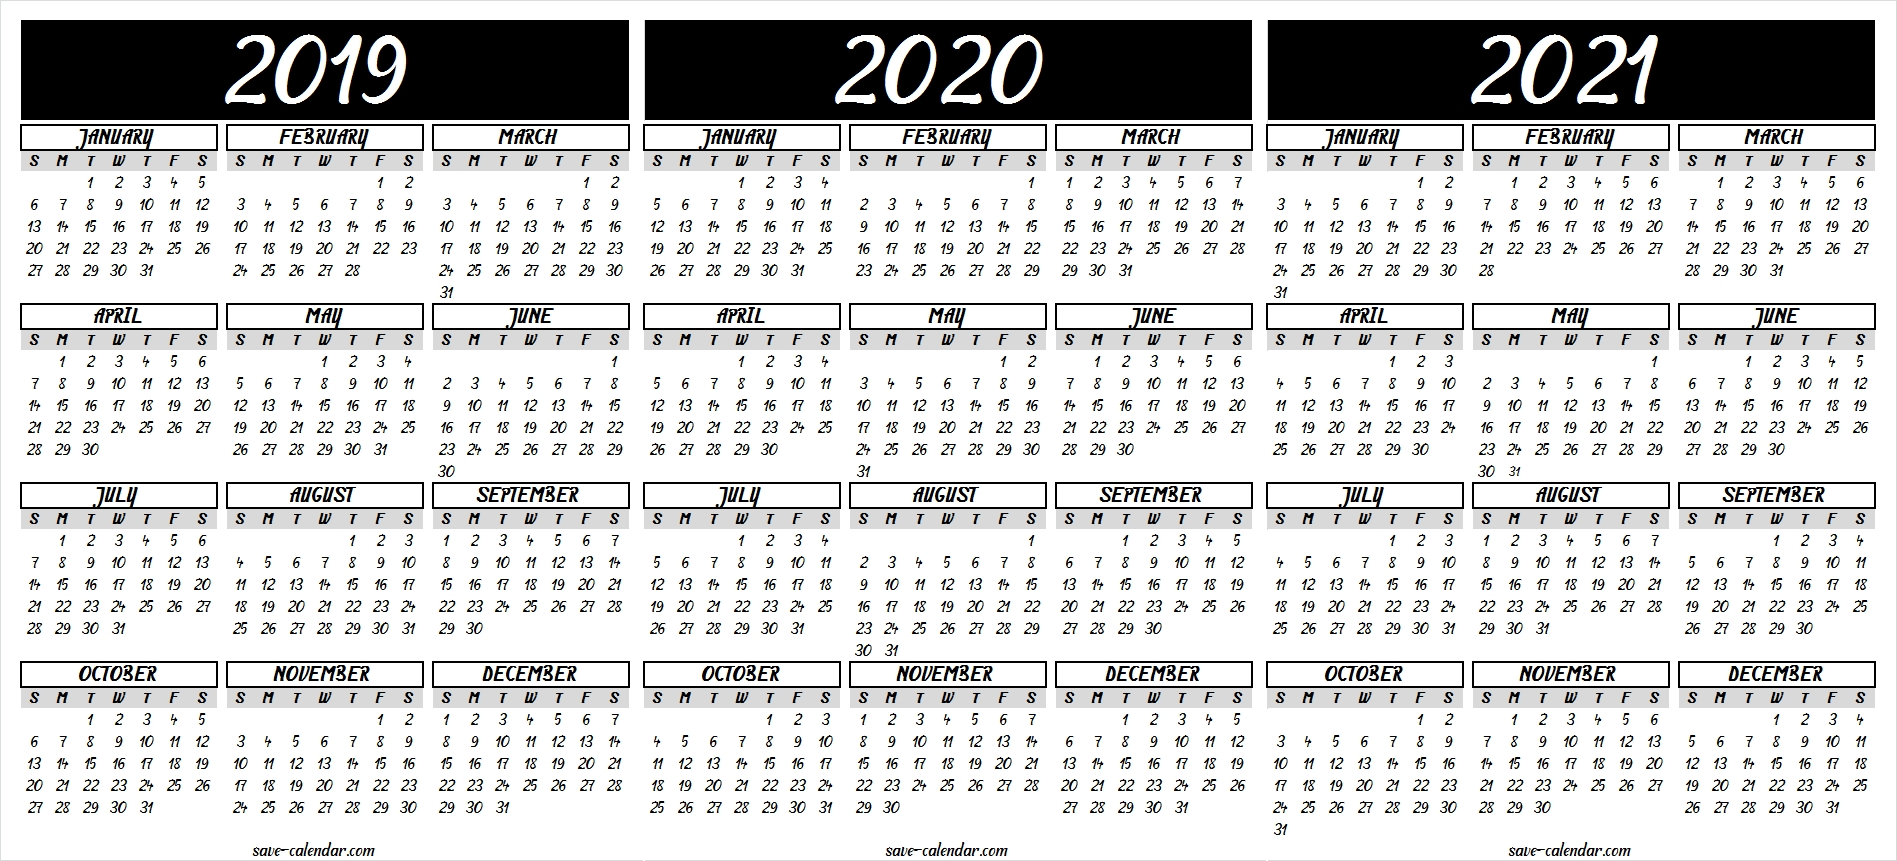 2019 2020 2021 Calendar Printable | 2021 Calendar, Templates in 2019 To 2021 Printable Calendar